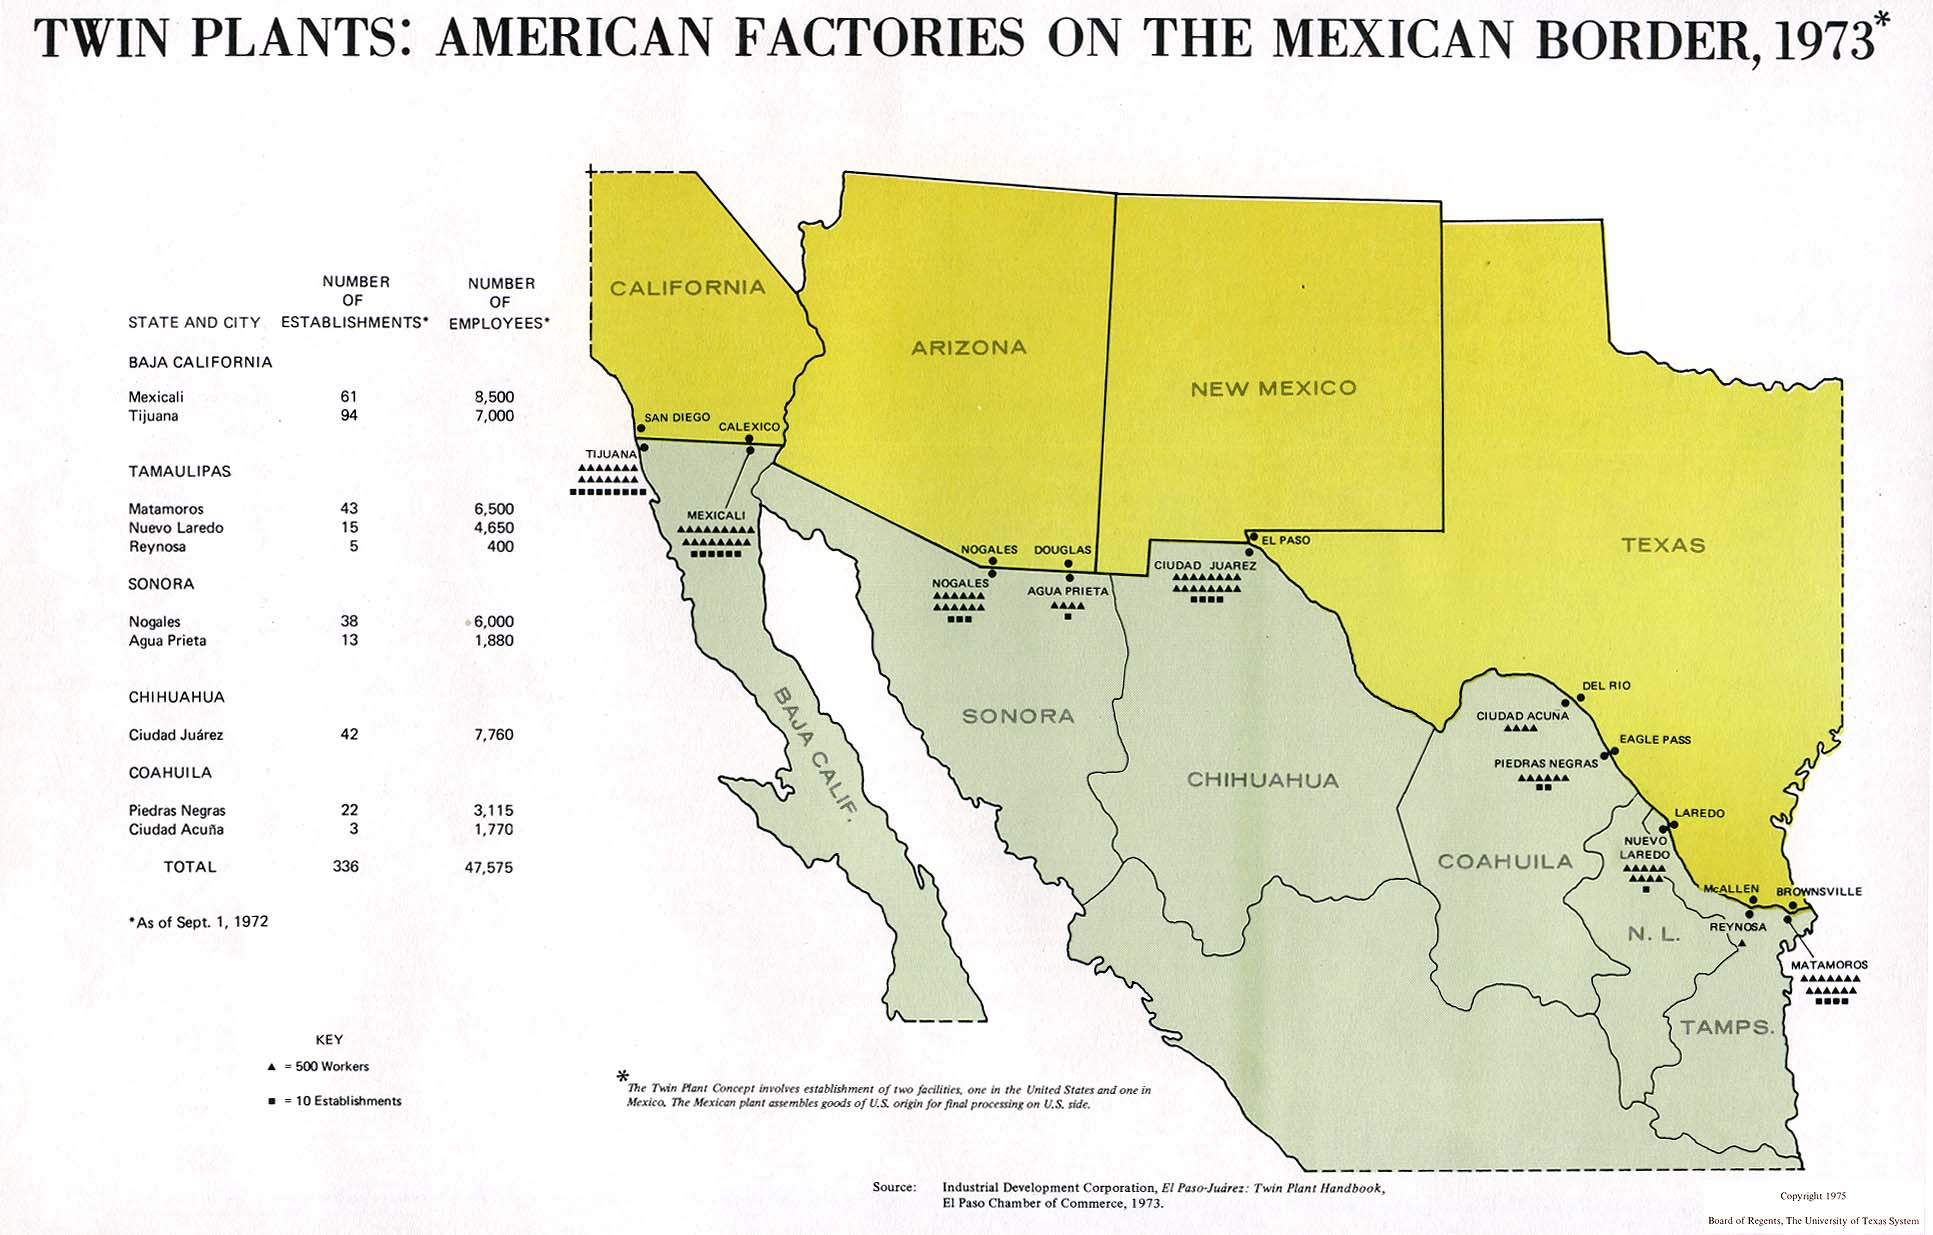 americanmexican culture essay There is a short essay section asking for a particular experience of cultural difference i have had or observed and to explain what i learned ehic renewal.